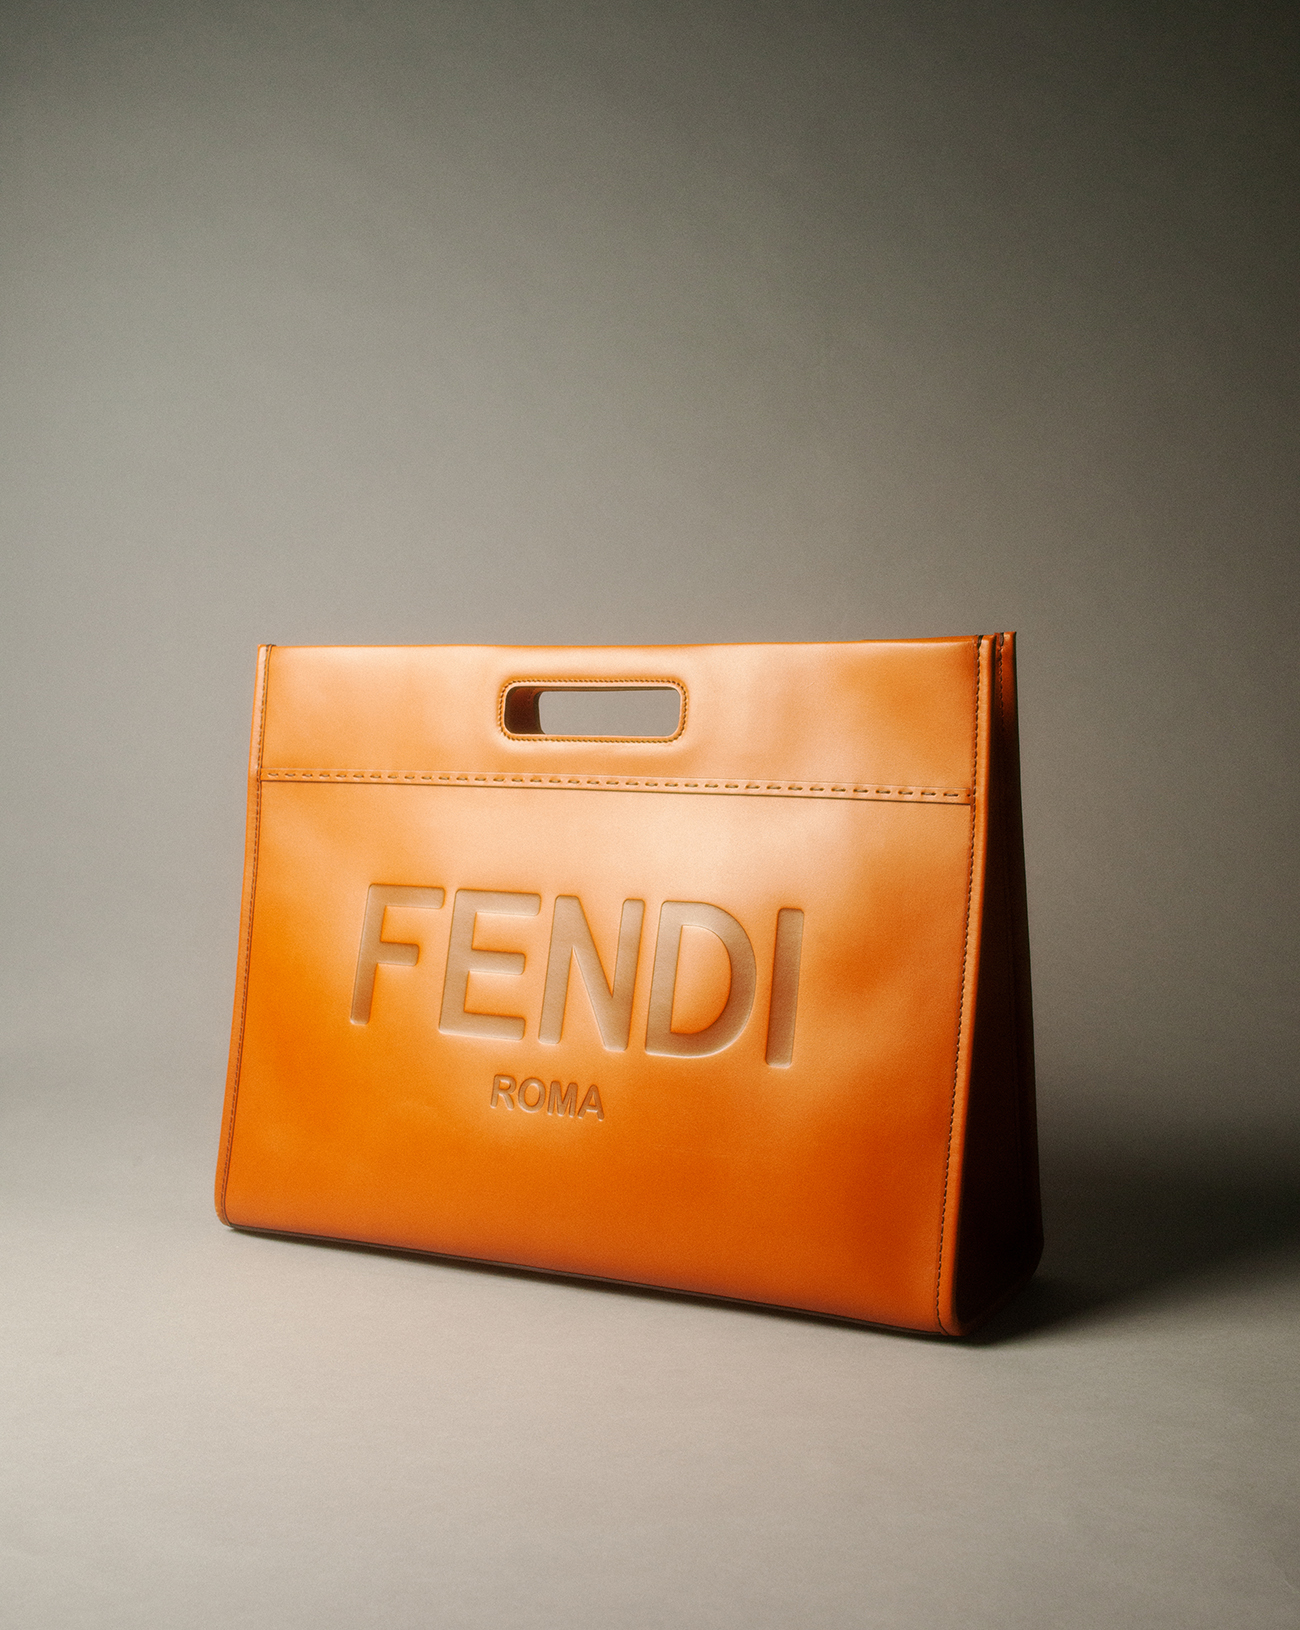 Original original fendi bag